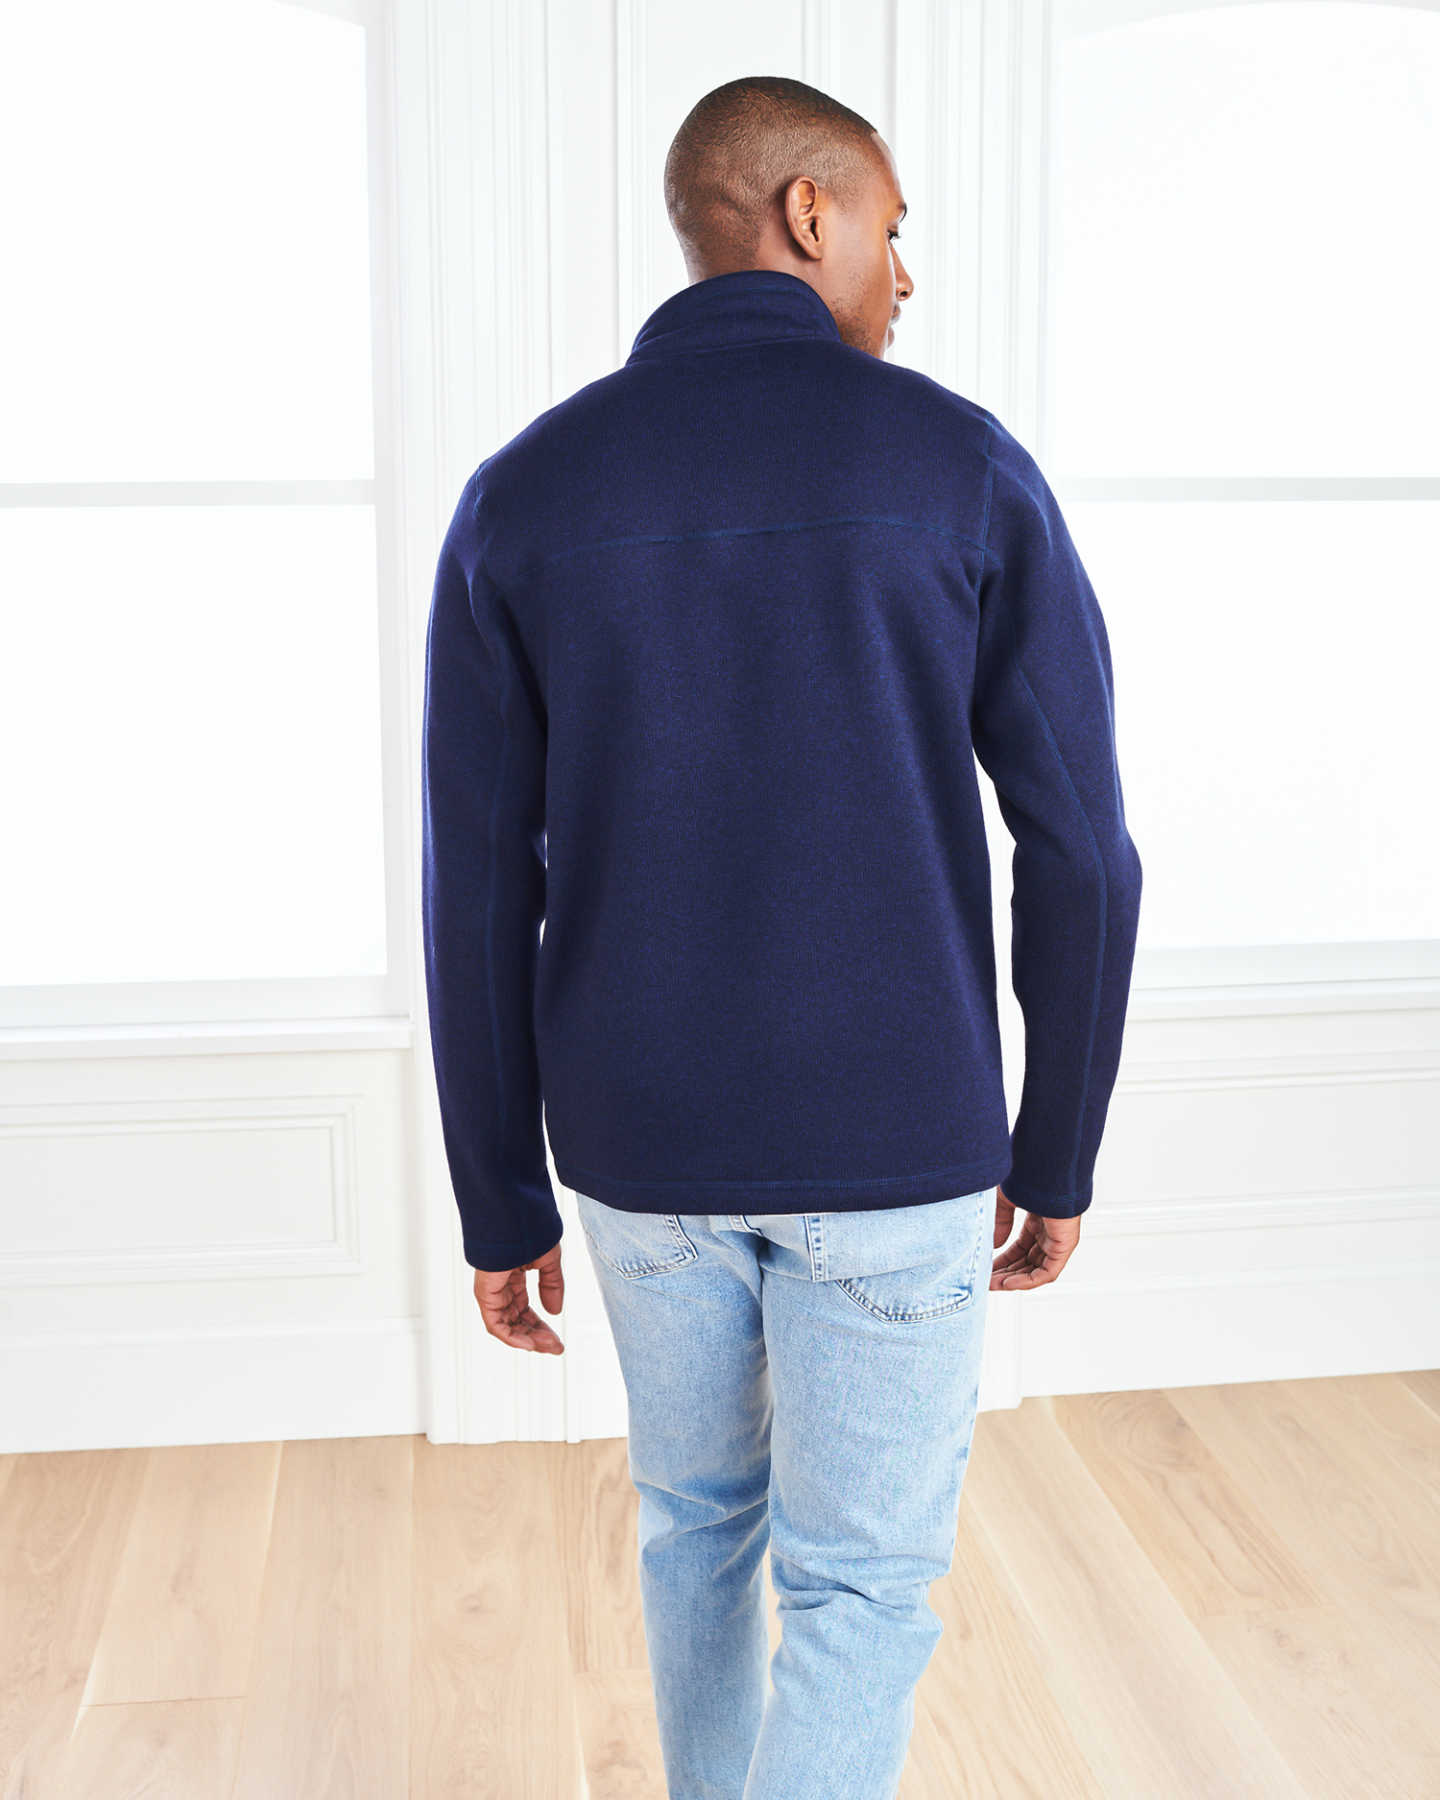 Recycled Sweater Fleece Pullover Jacket - Navy - 4